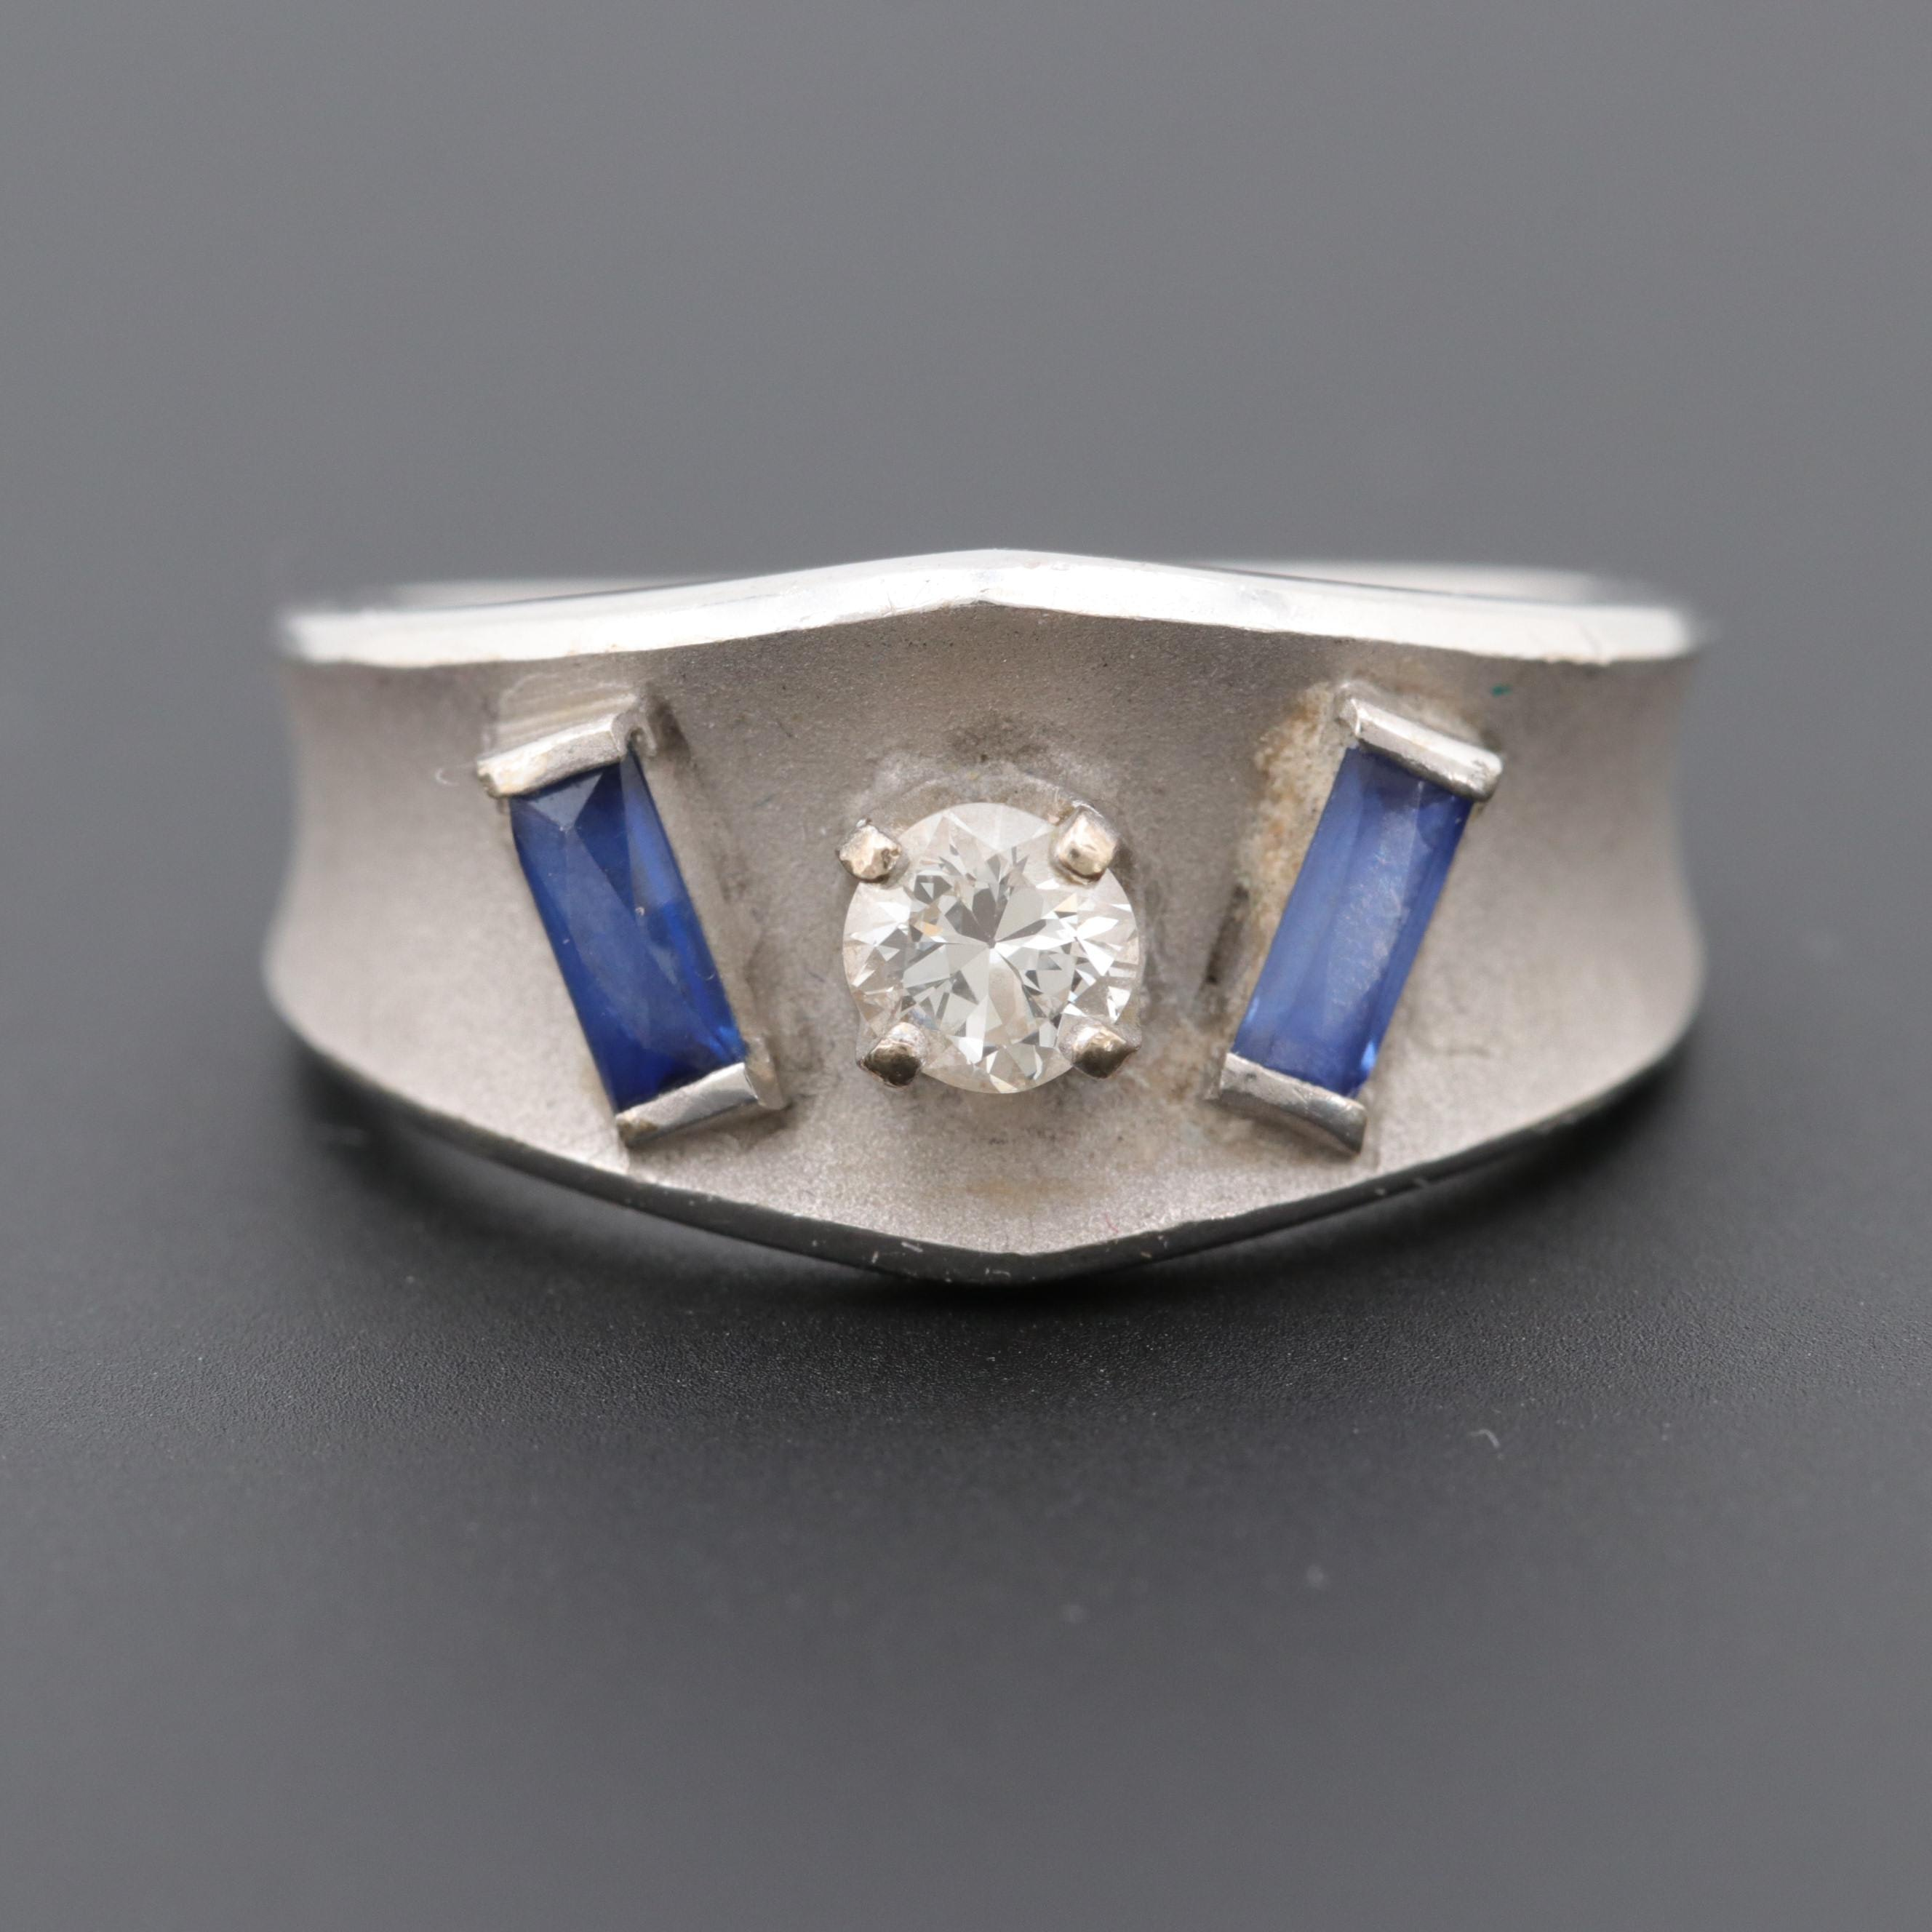 14K White Gold Diamond and Synthetic Blue Sapphire Ring with Matte Finish